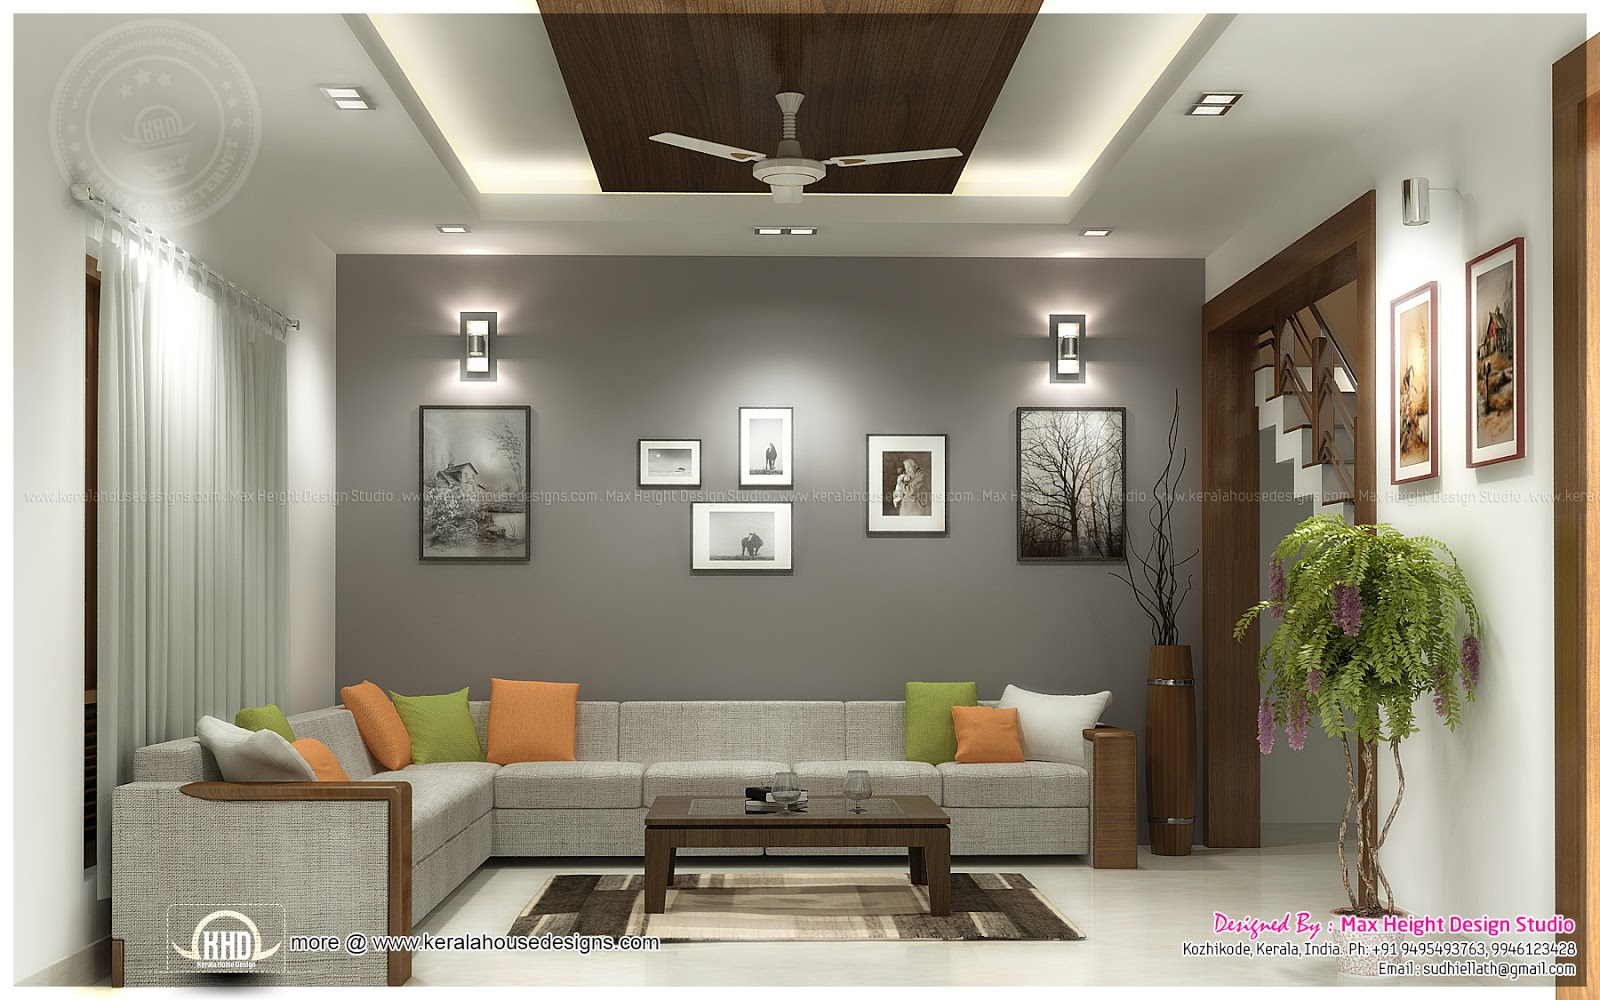 Beautiful interior ideas for home home kerala plans Venetian interior design ideas for your home